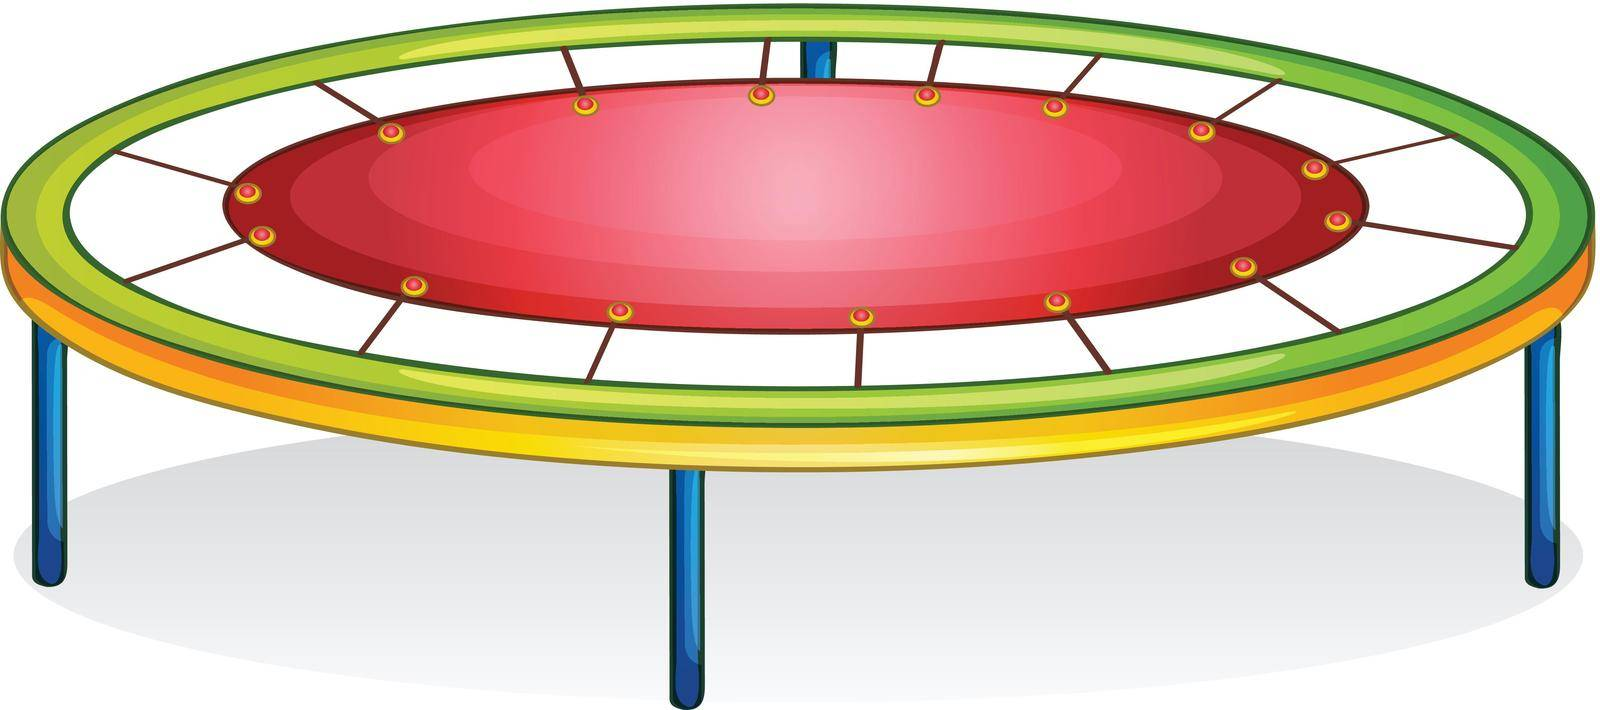 Isolated illustration of play equipment - trampoline